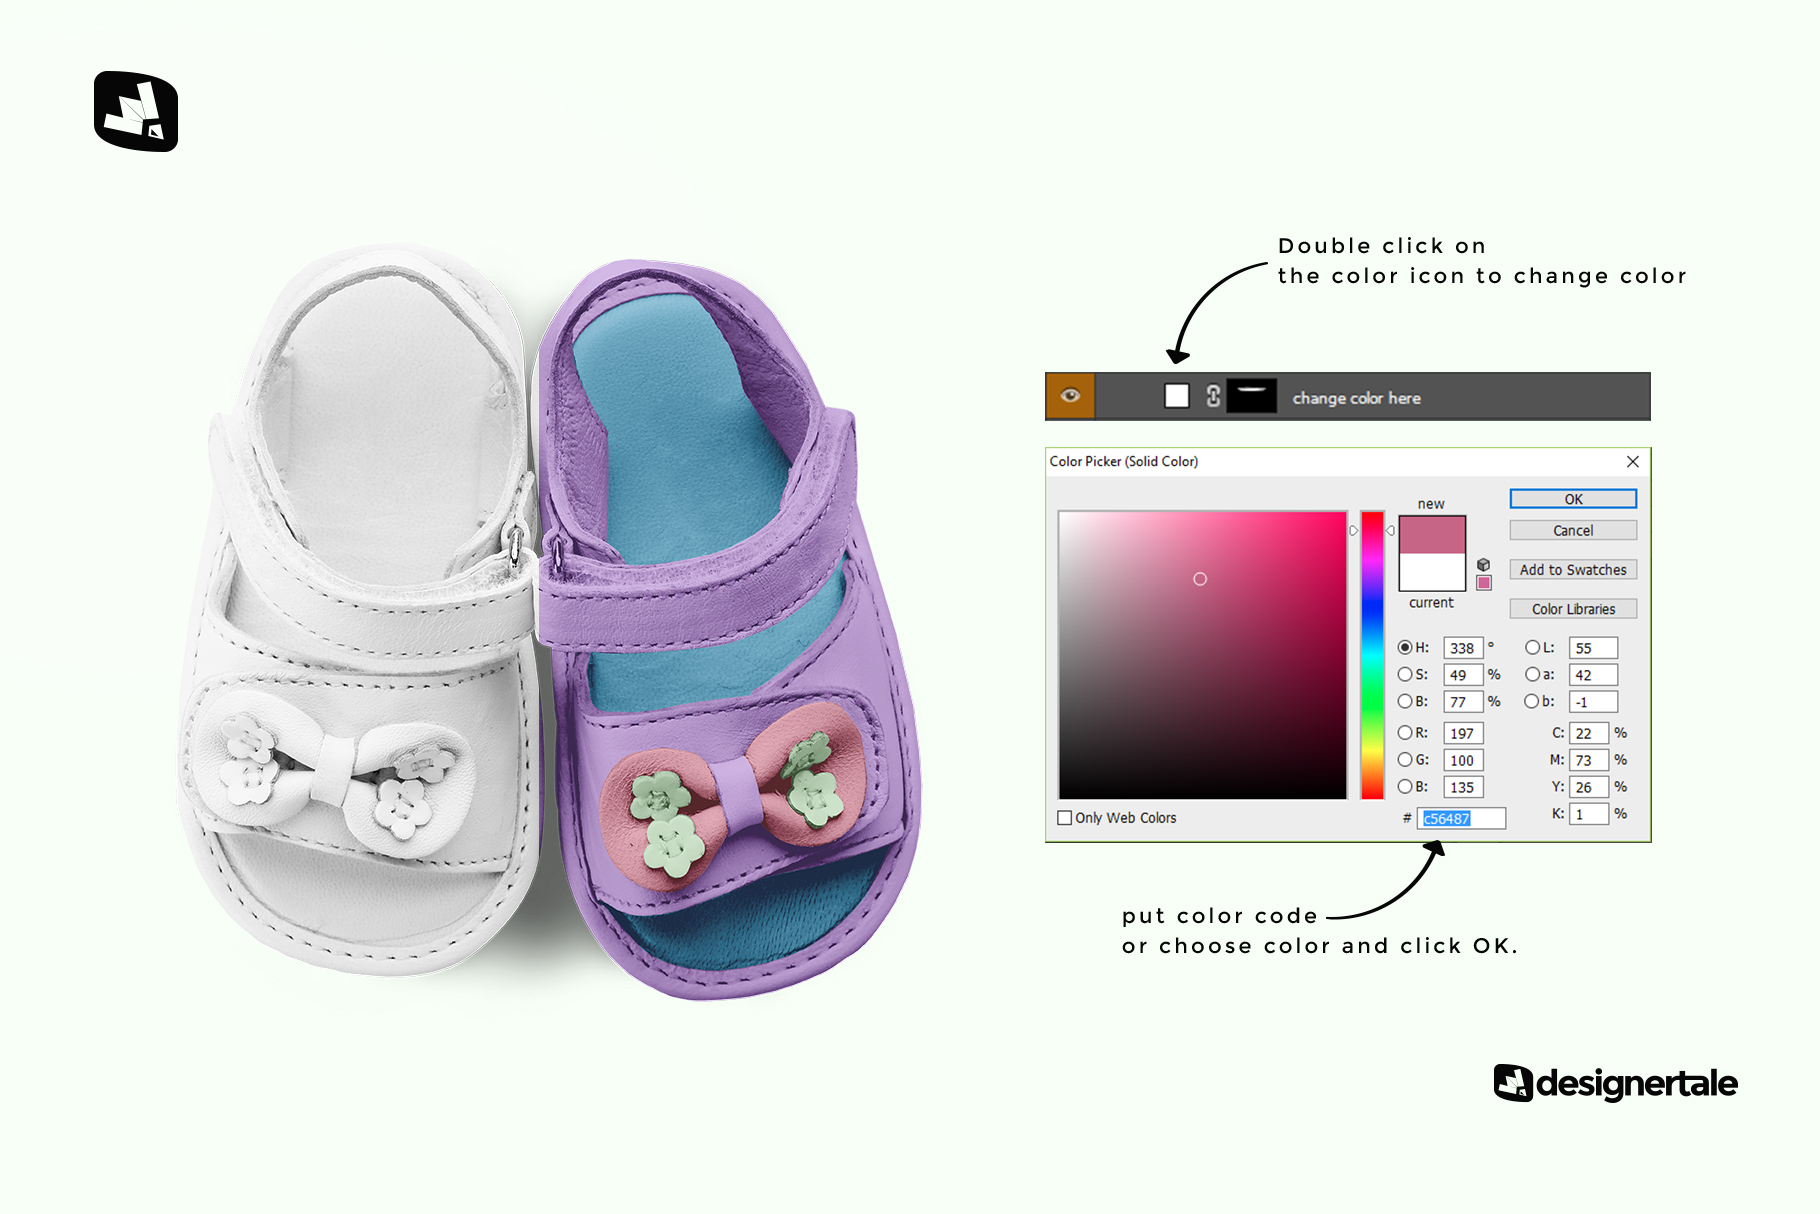 how to change color of the topview baby sandals with bow mockup